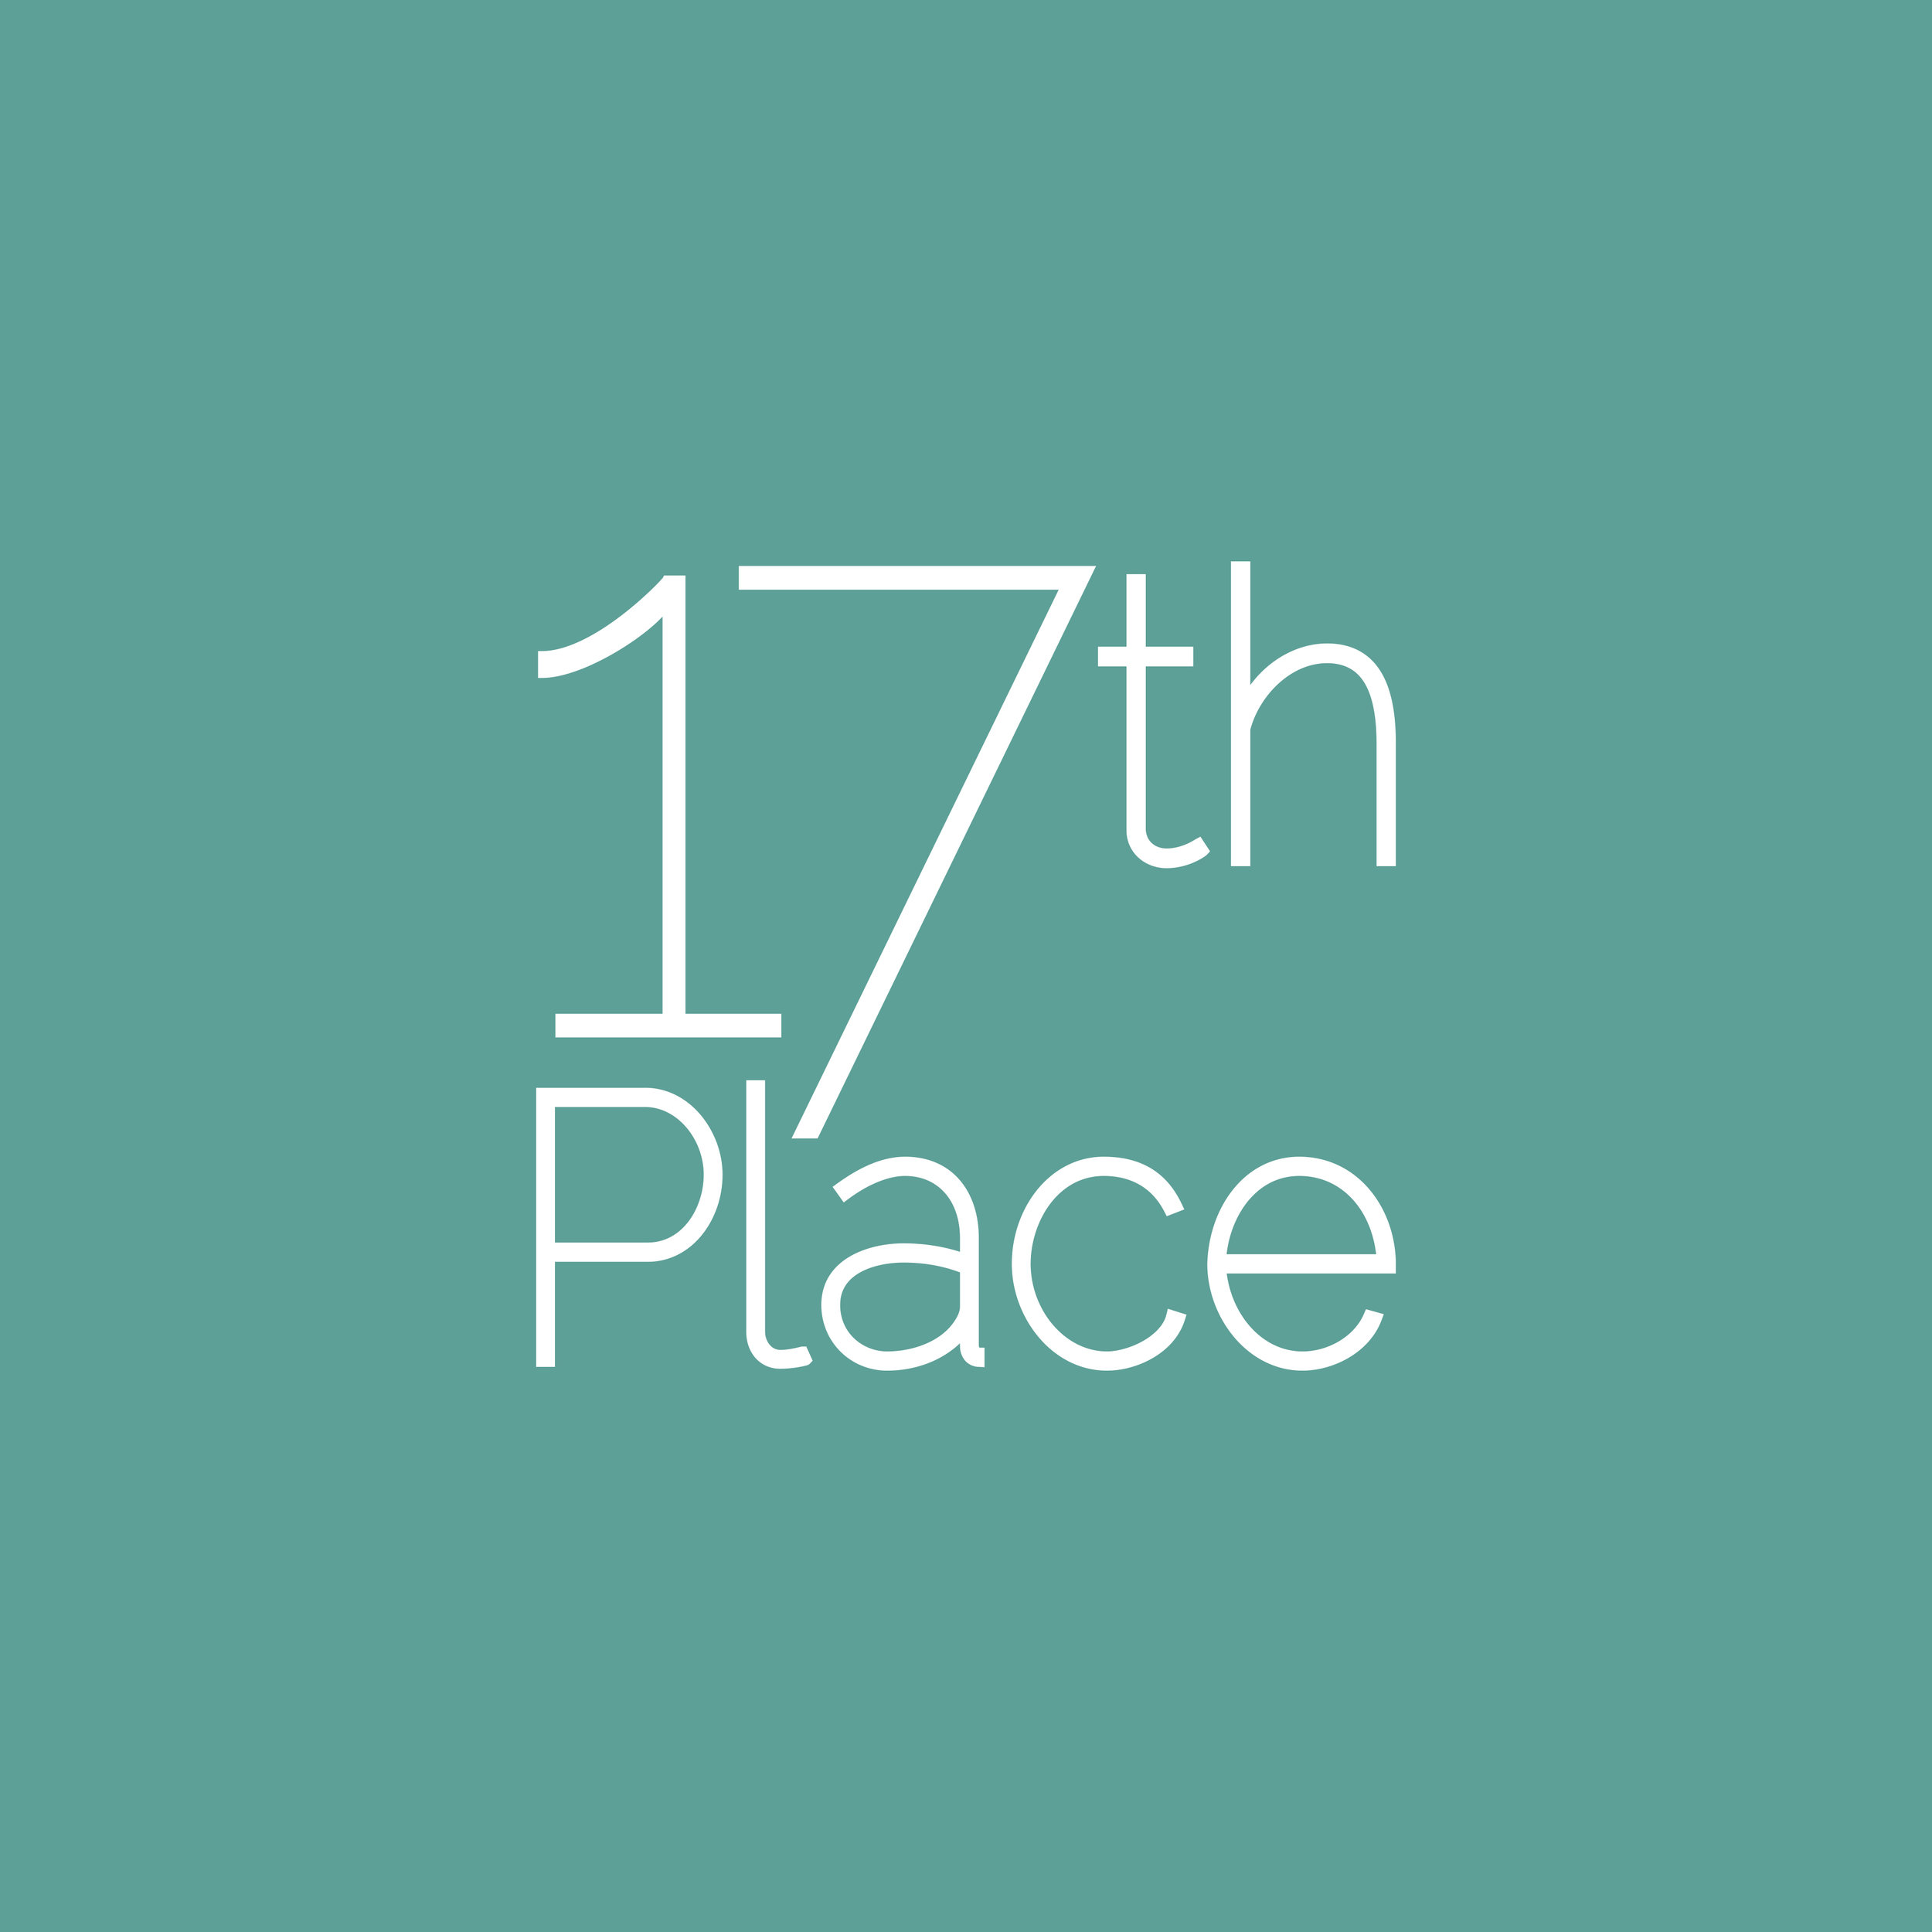 17thPlaceLiving_Logo-Stacked.jpg